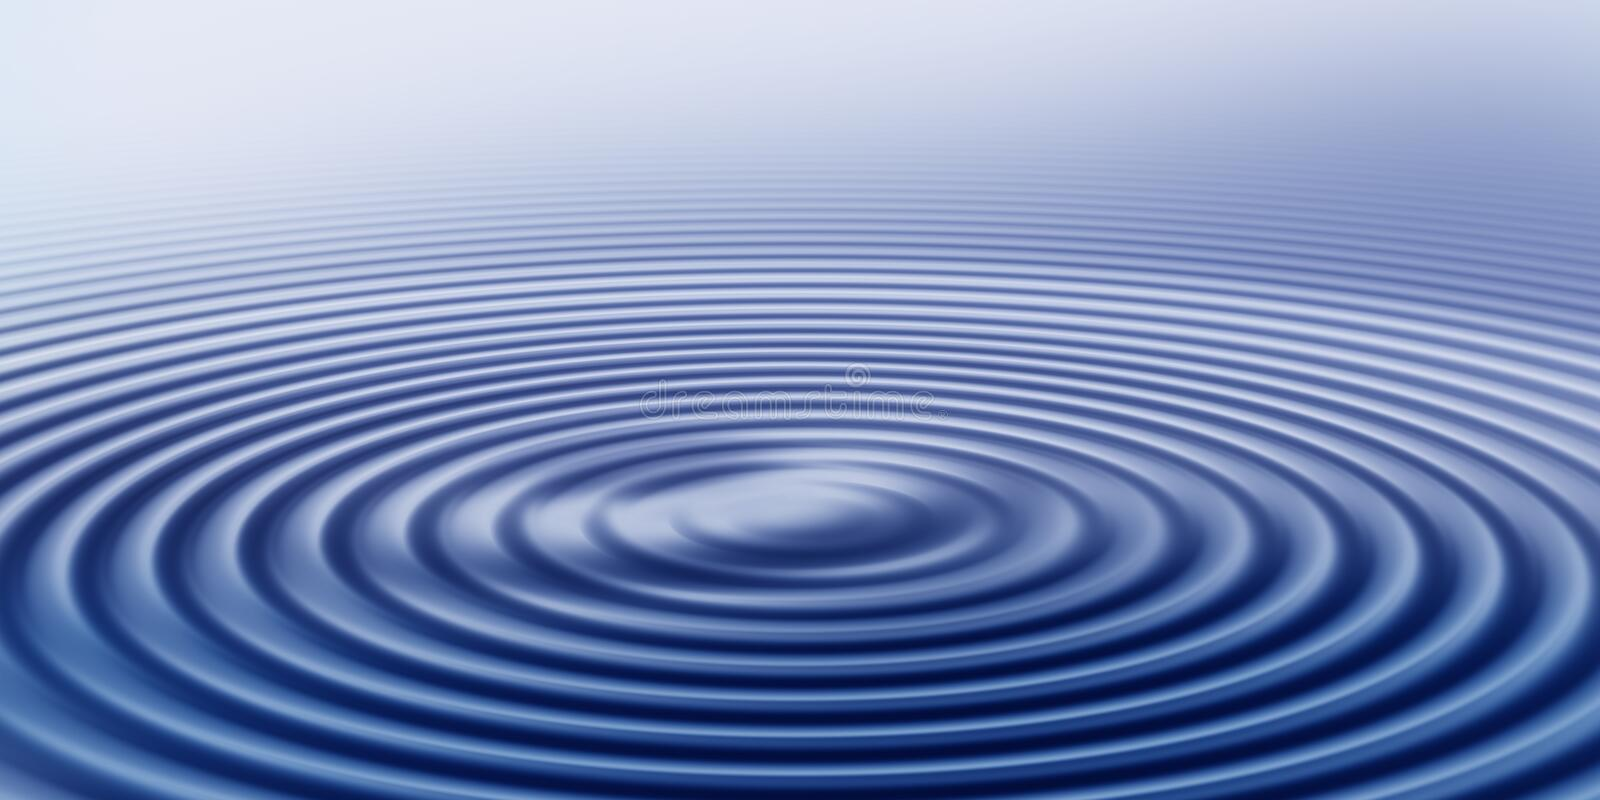 Rippled rings of water. Three dimensional background of rippled rings of blue water royalty free illustration